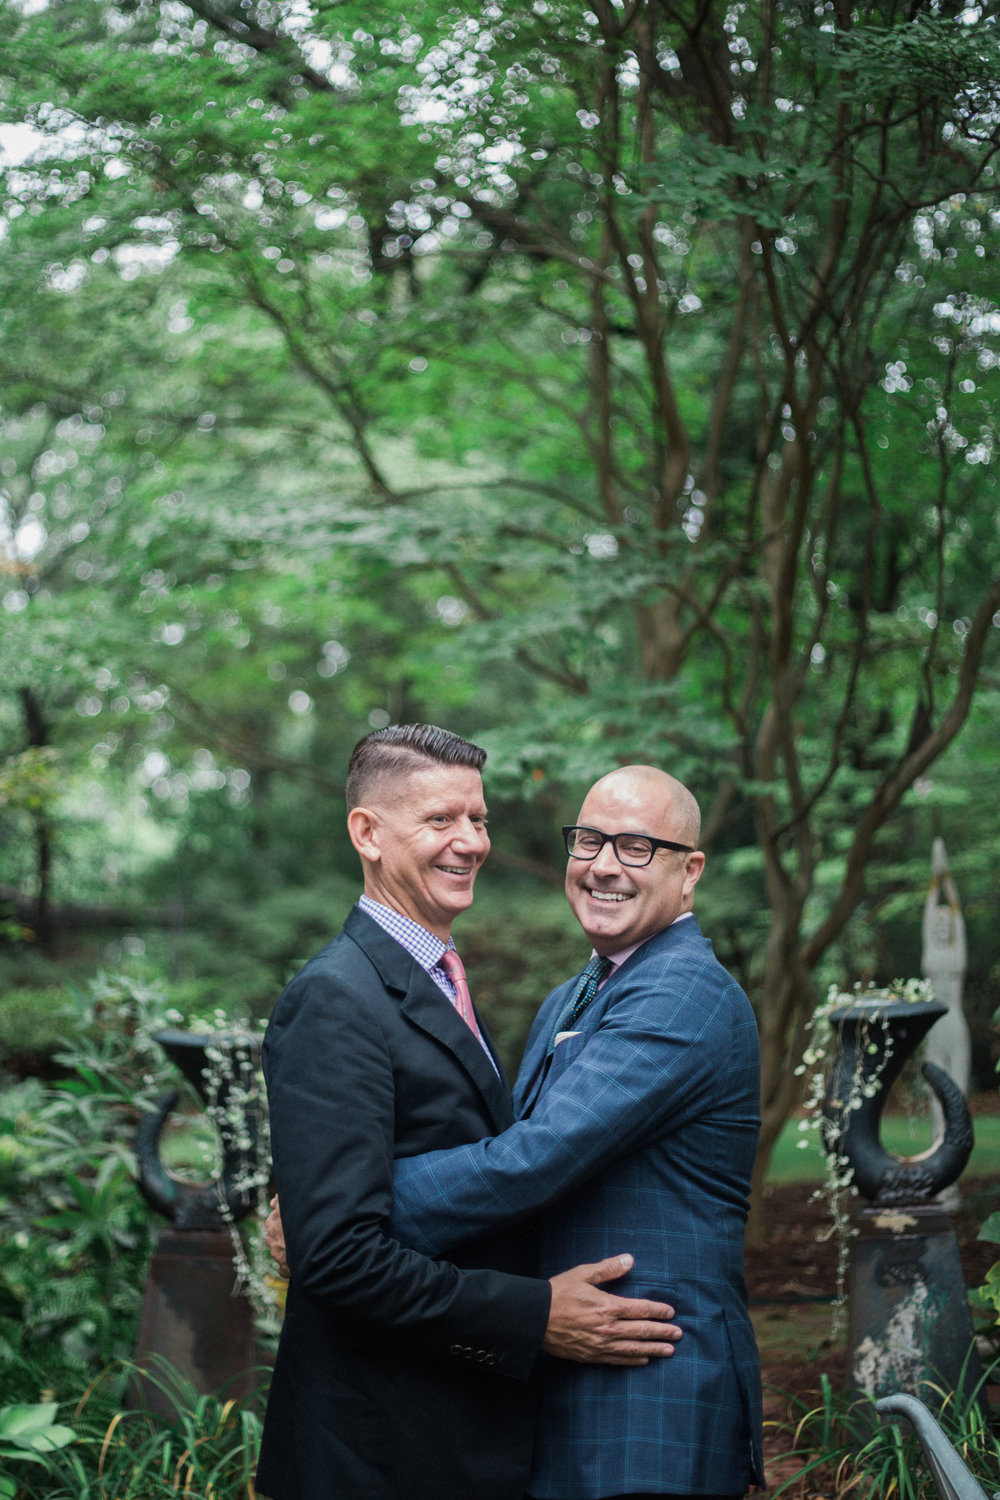 Atlanta LGBT Wedding Photographer.jpg